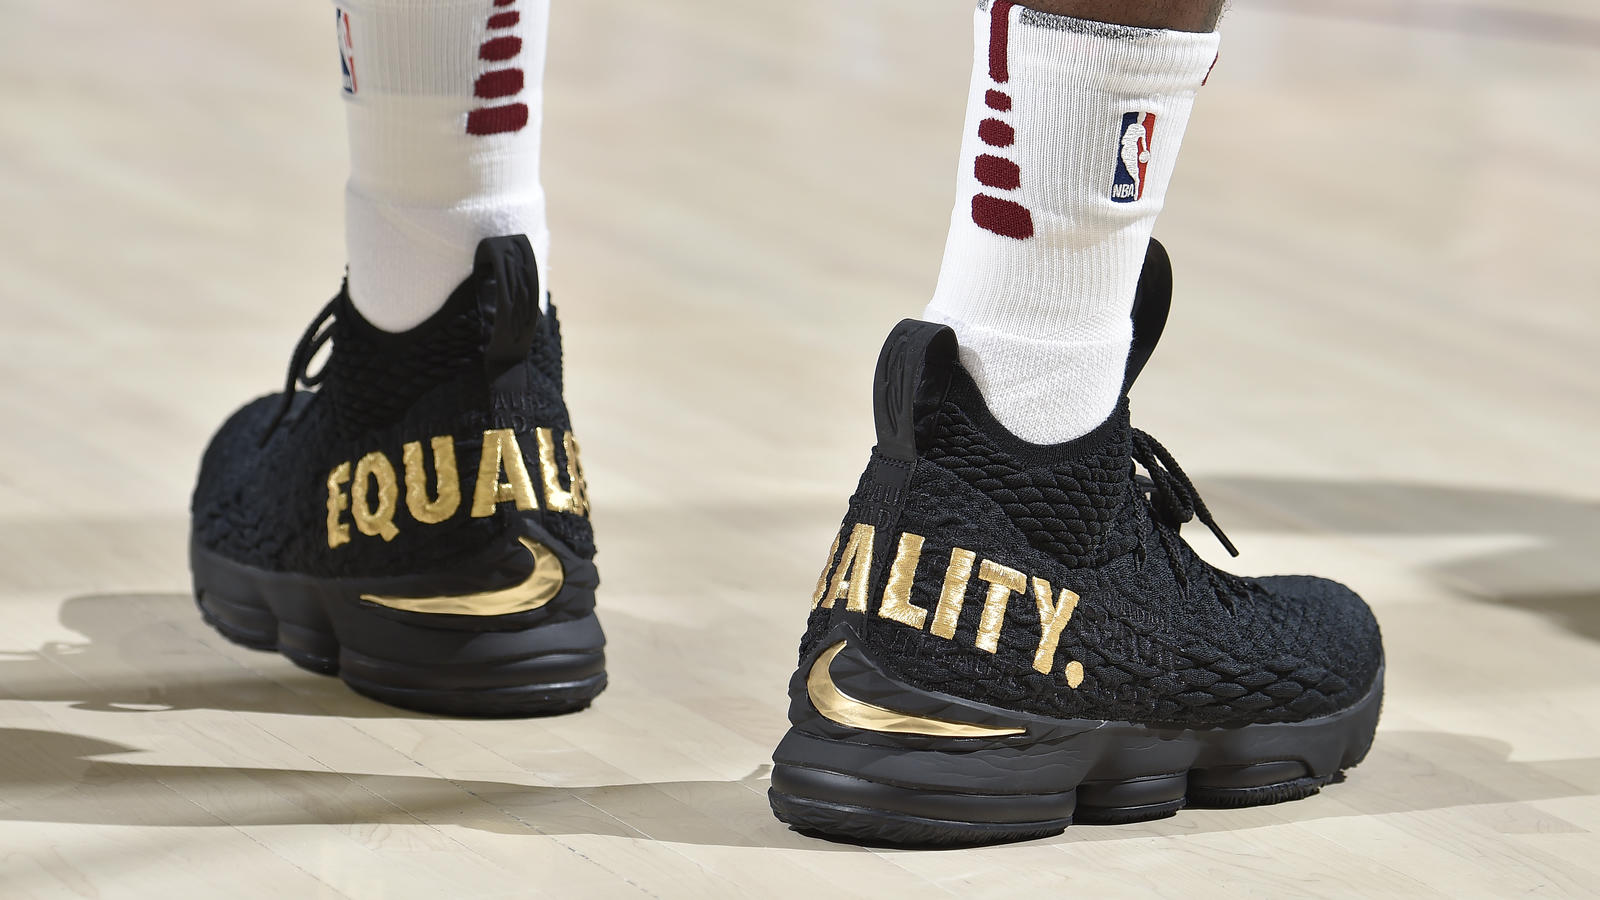 2bc553367ef4a6 Win A Pair of Nike LeBron 15 EQUALITY Sneakers - Nike News